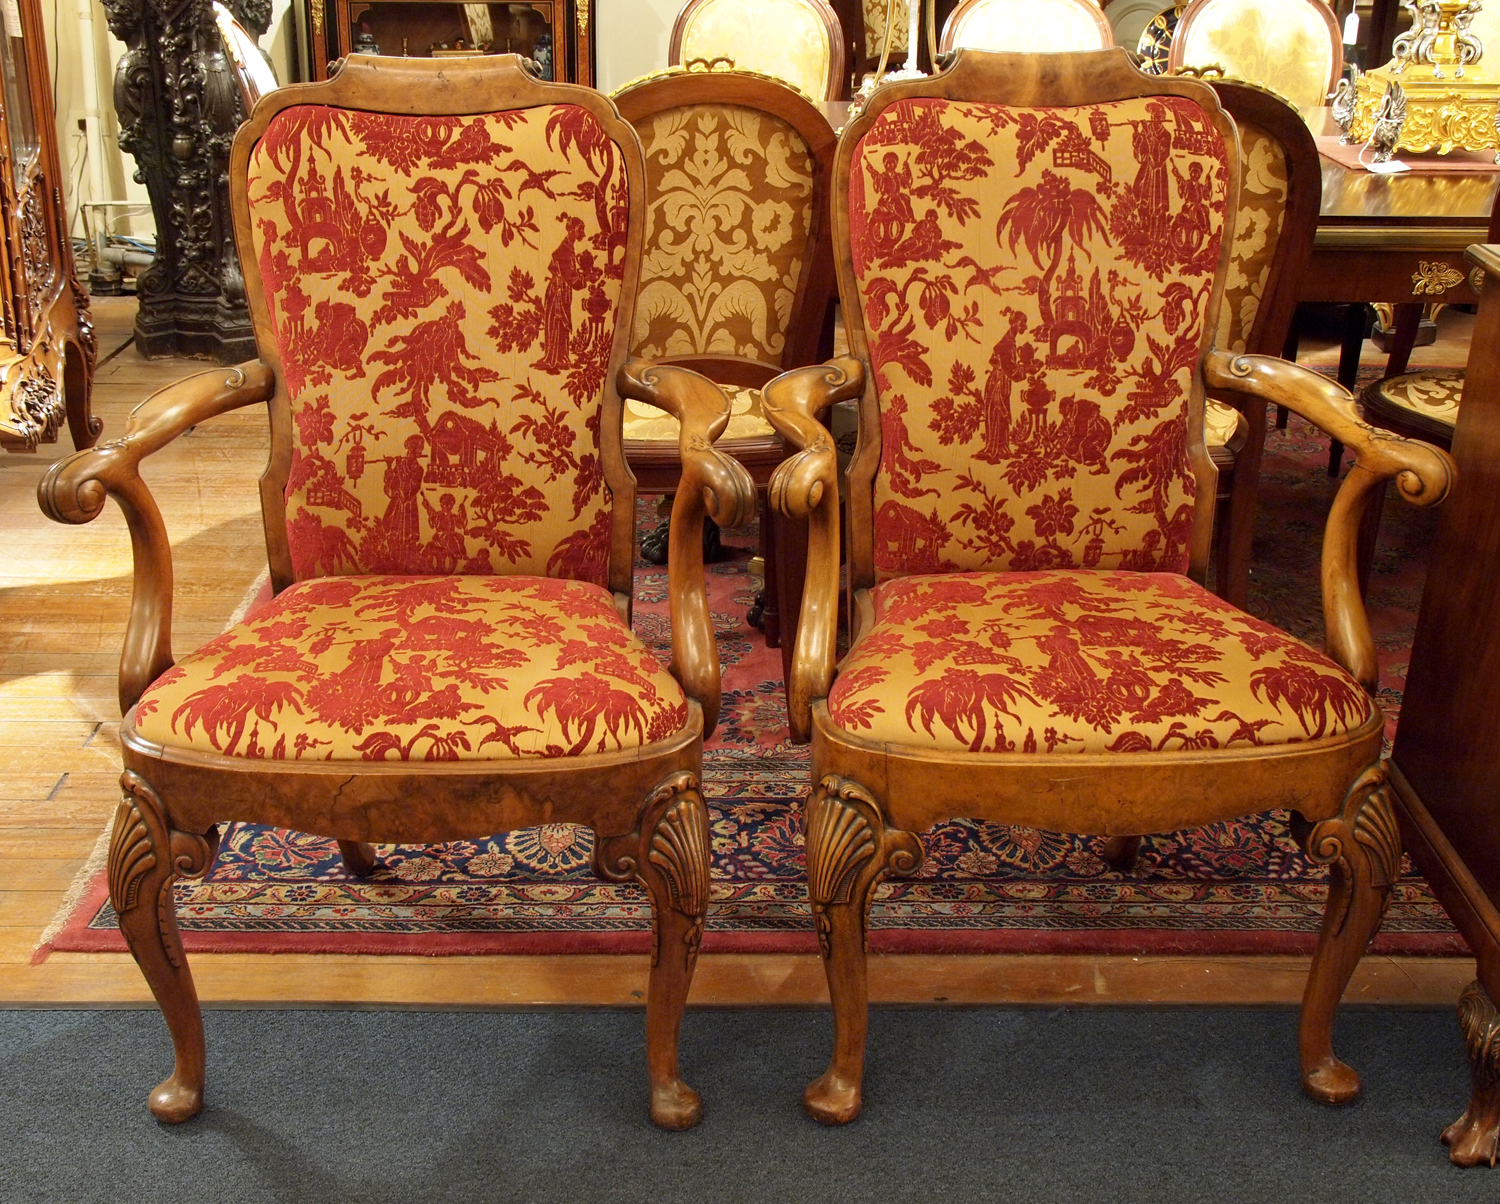 Pair Of Antique English Walnut Queen Anne Arm Chairs Eac41 For Sale Classifieds